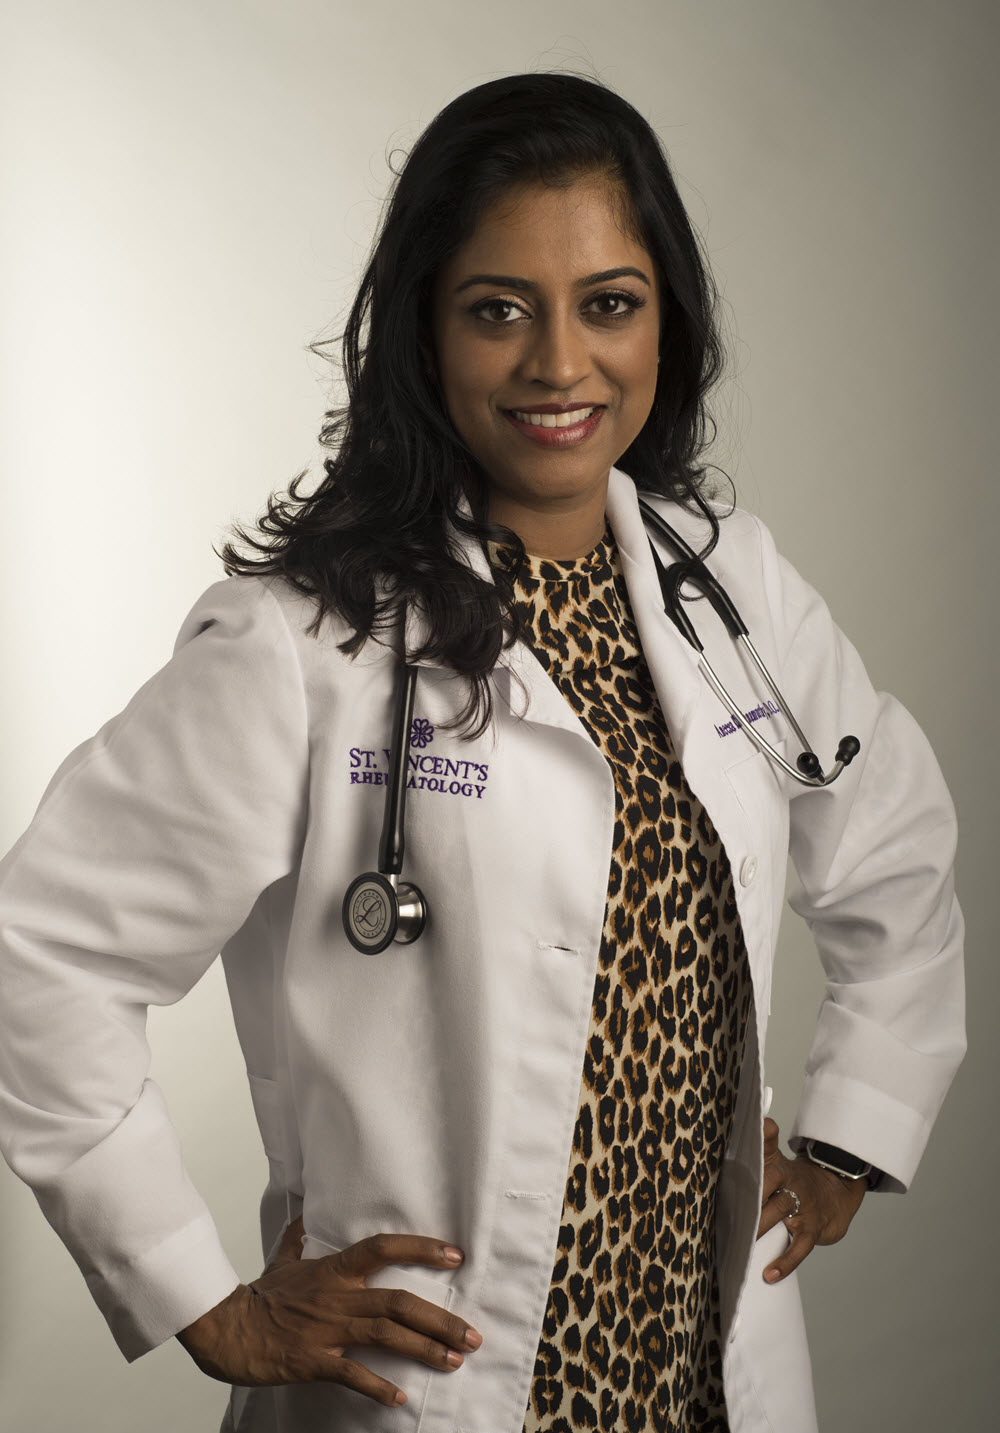 Aneesa Krishnamurthy DO - Rheumatology - Arthritis | Ascension